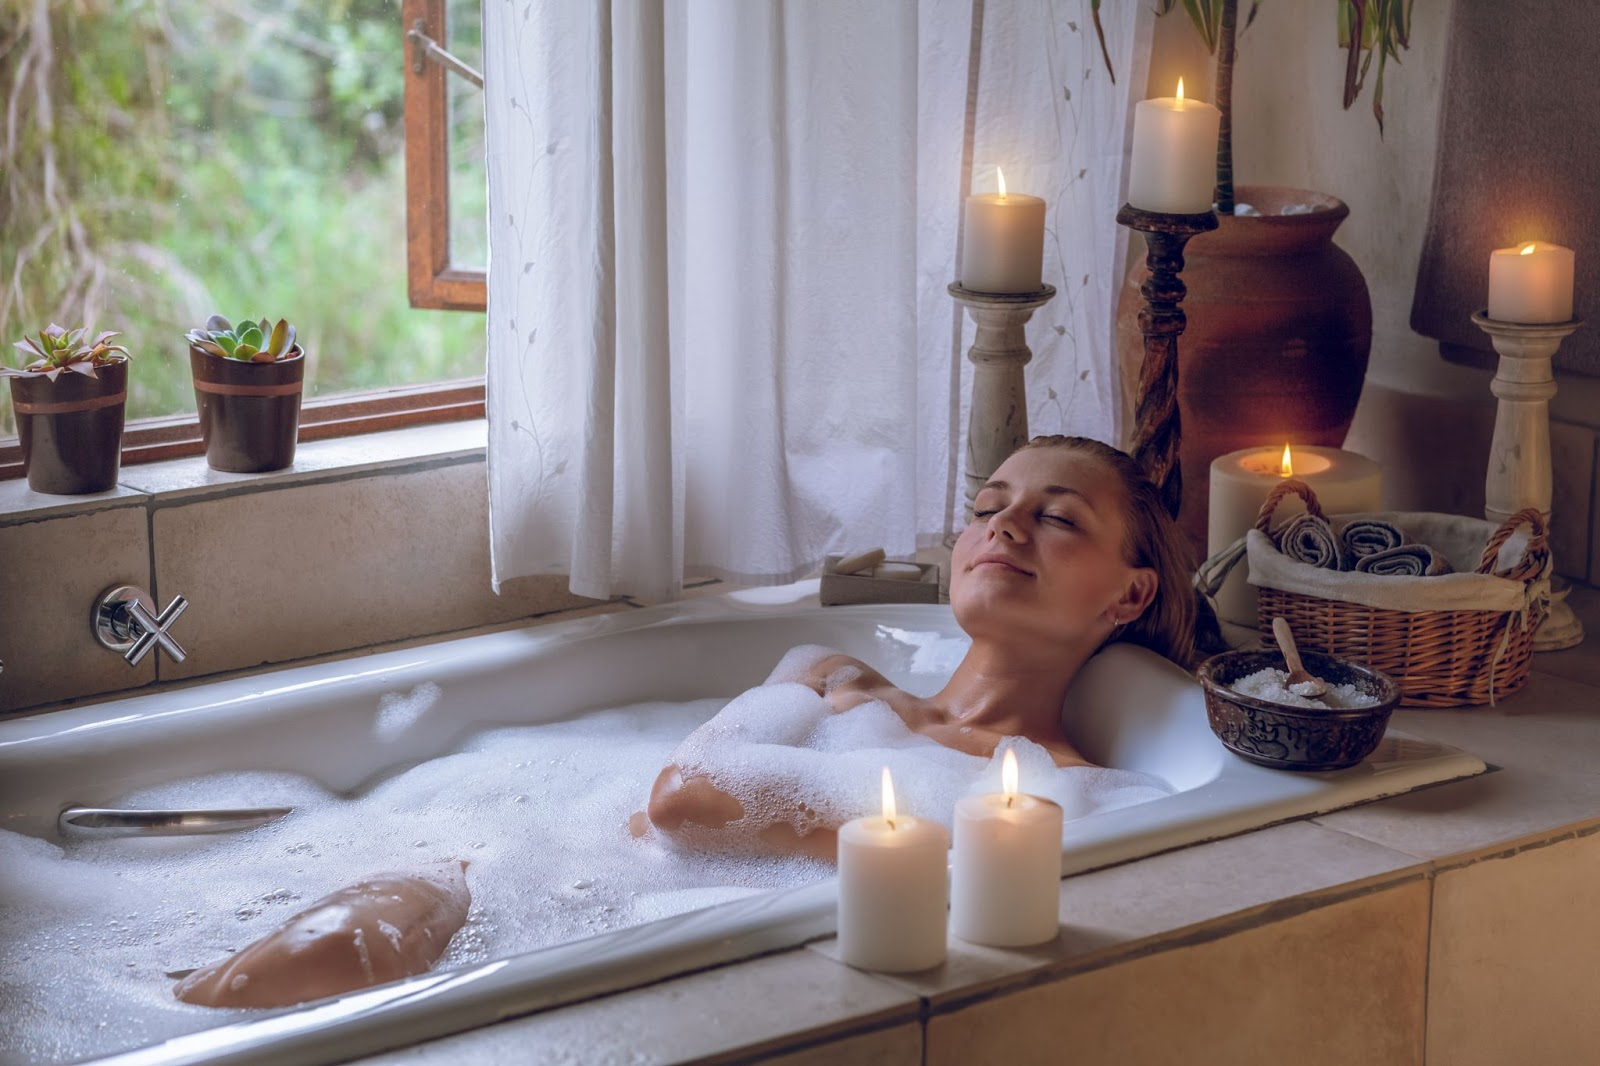 A woman relaxes in a bathtub surrounded by candles